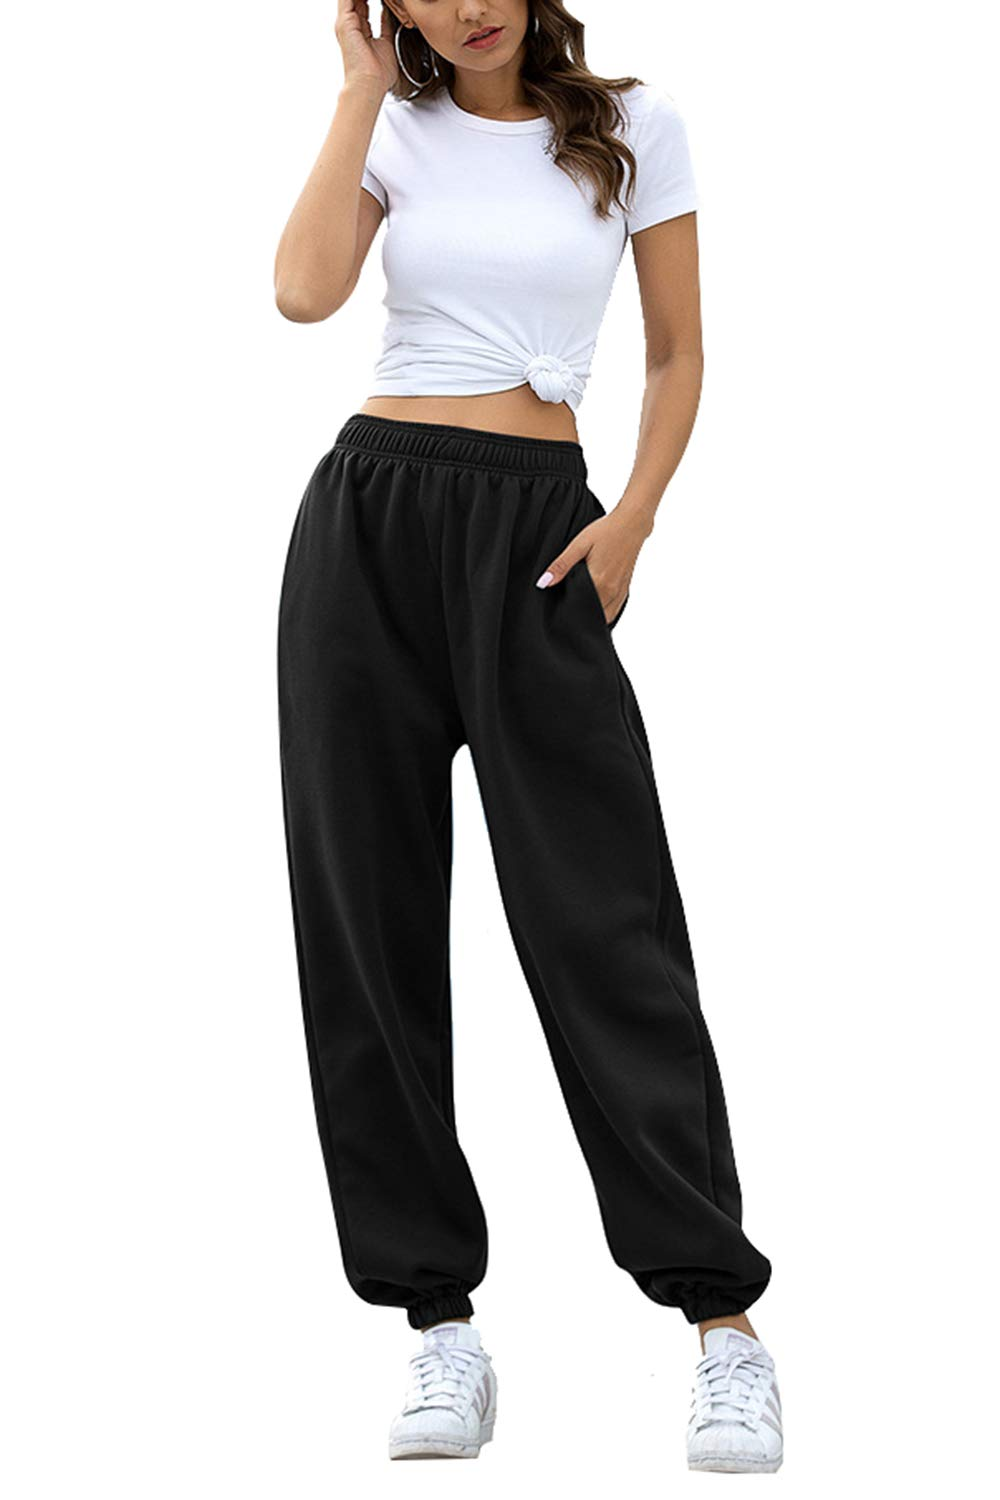 Pink Queen Women's High Waisted Joggers Sweatpants Baggy Loose Lounge Bottom Pocket Pants